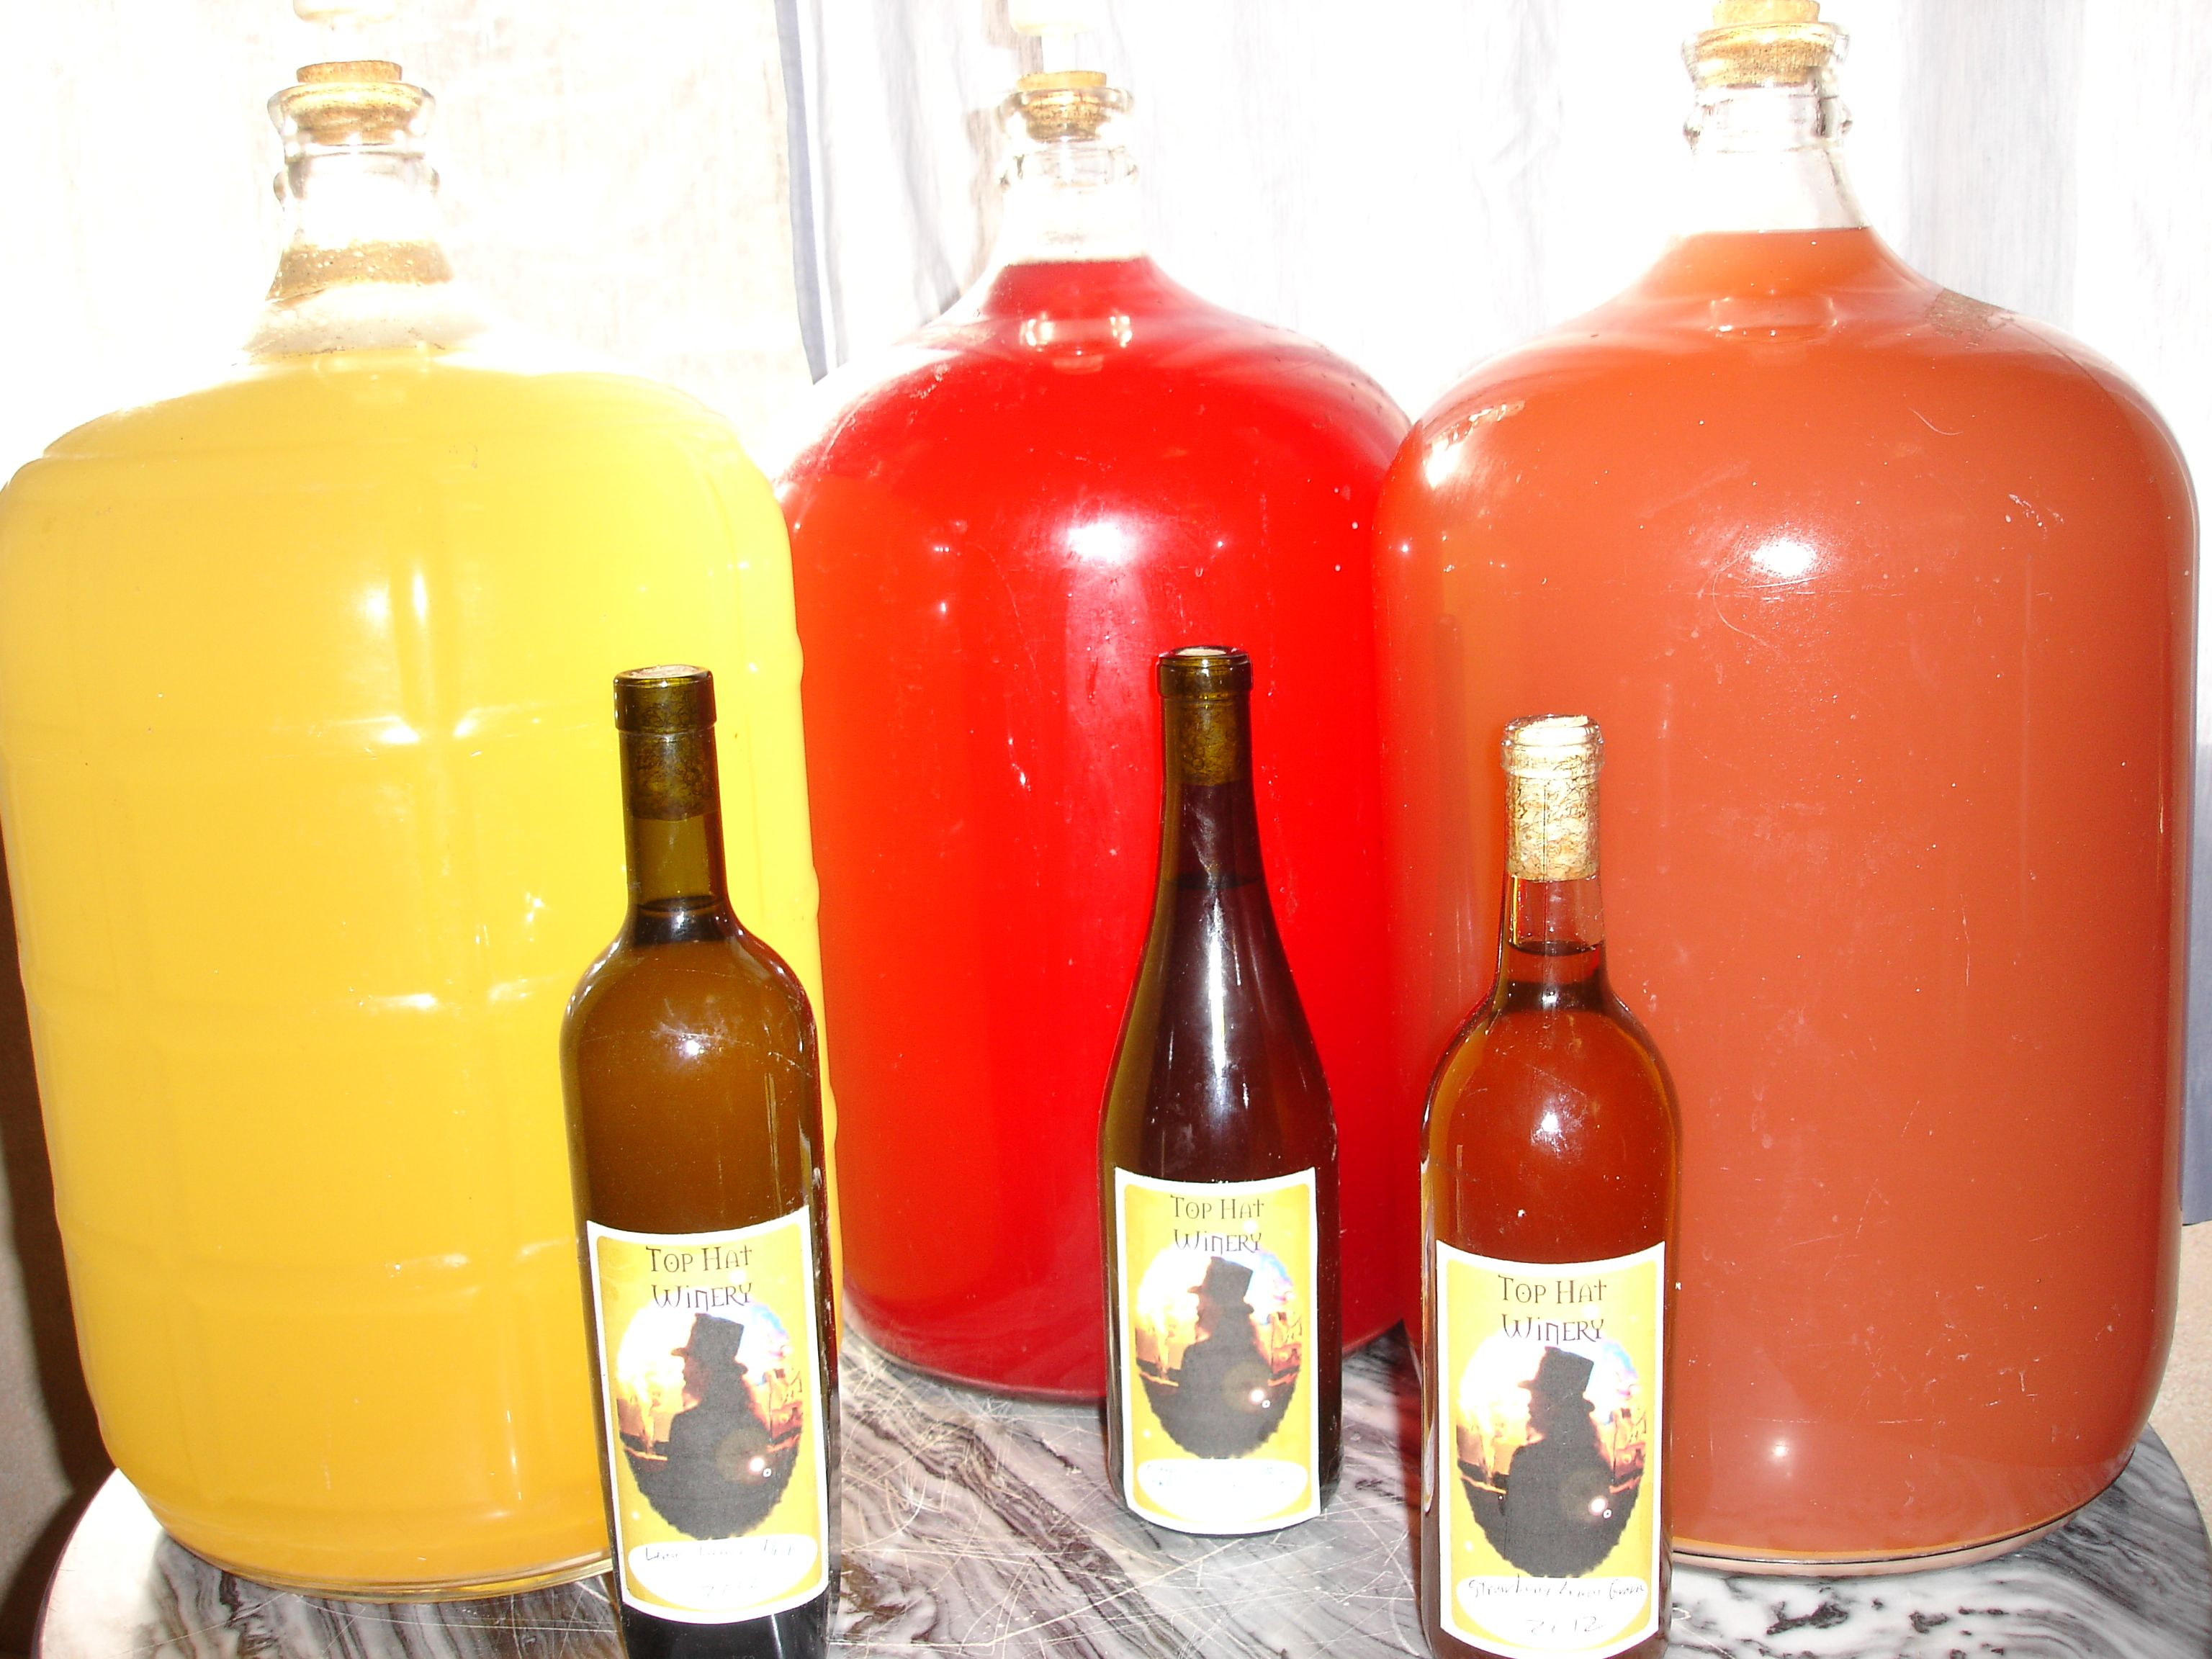 3 Wines In Bulk Storage And Bottled With Images Bottles Decoration Wine Making Winemaking